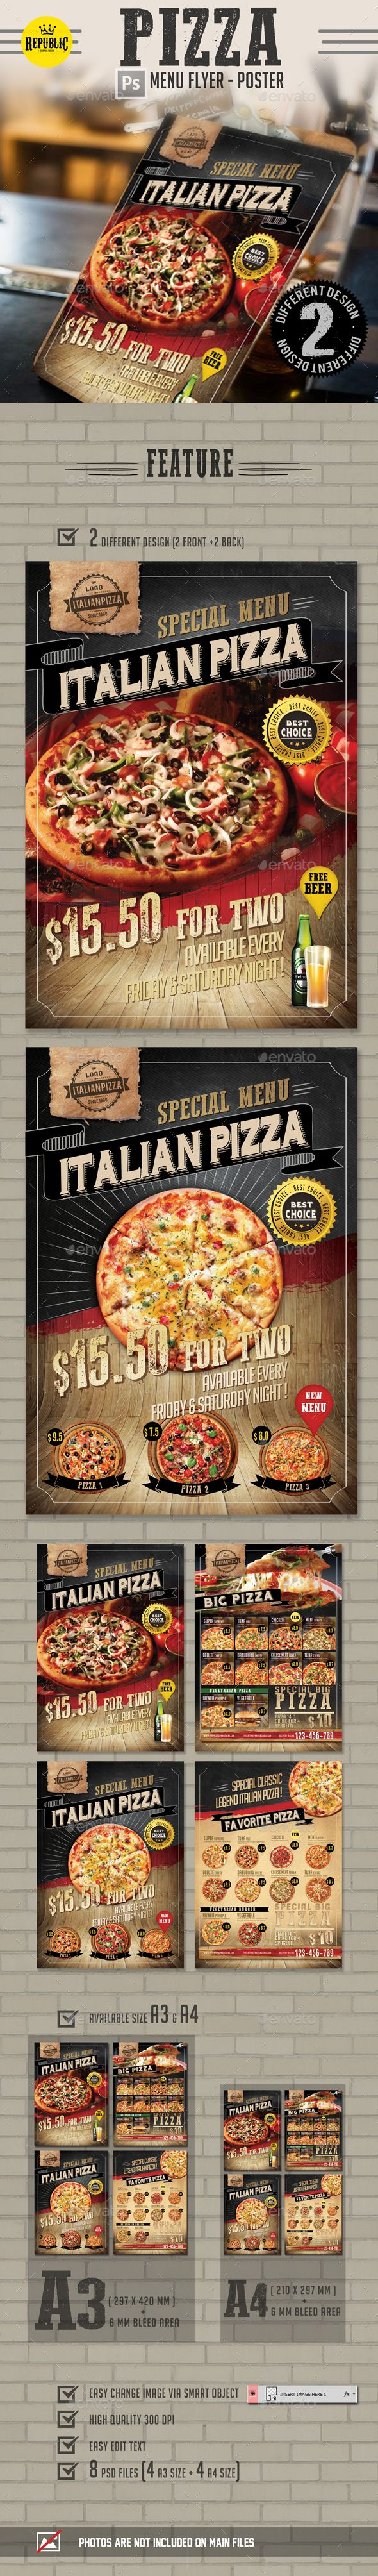 Pizza Menu Flyer Template PSD. Download here: http://graphicriver.net/item/pizza-menu-flyer-/15558970?ref=ksioks